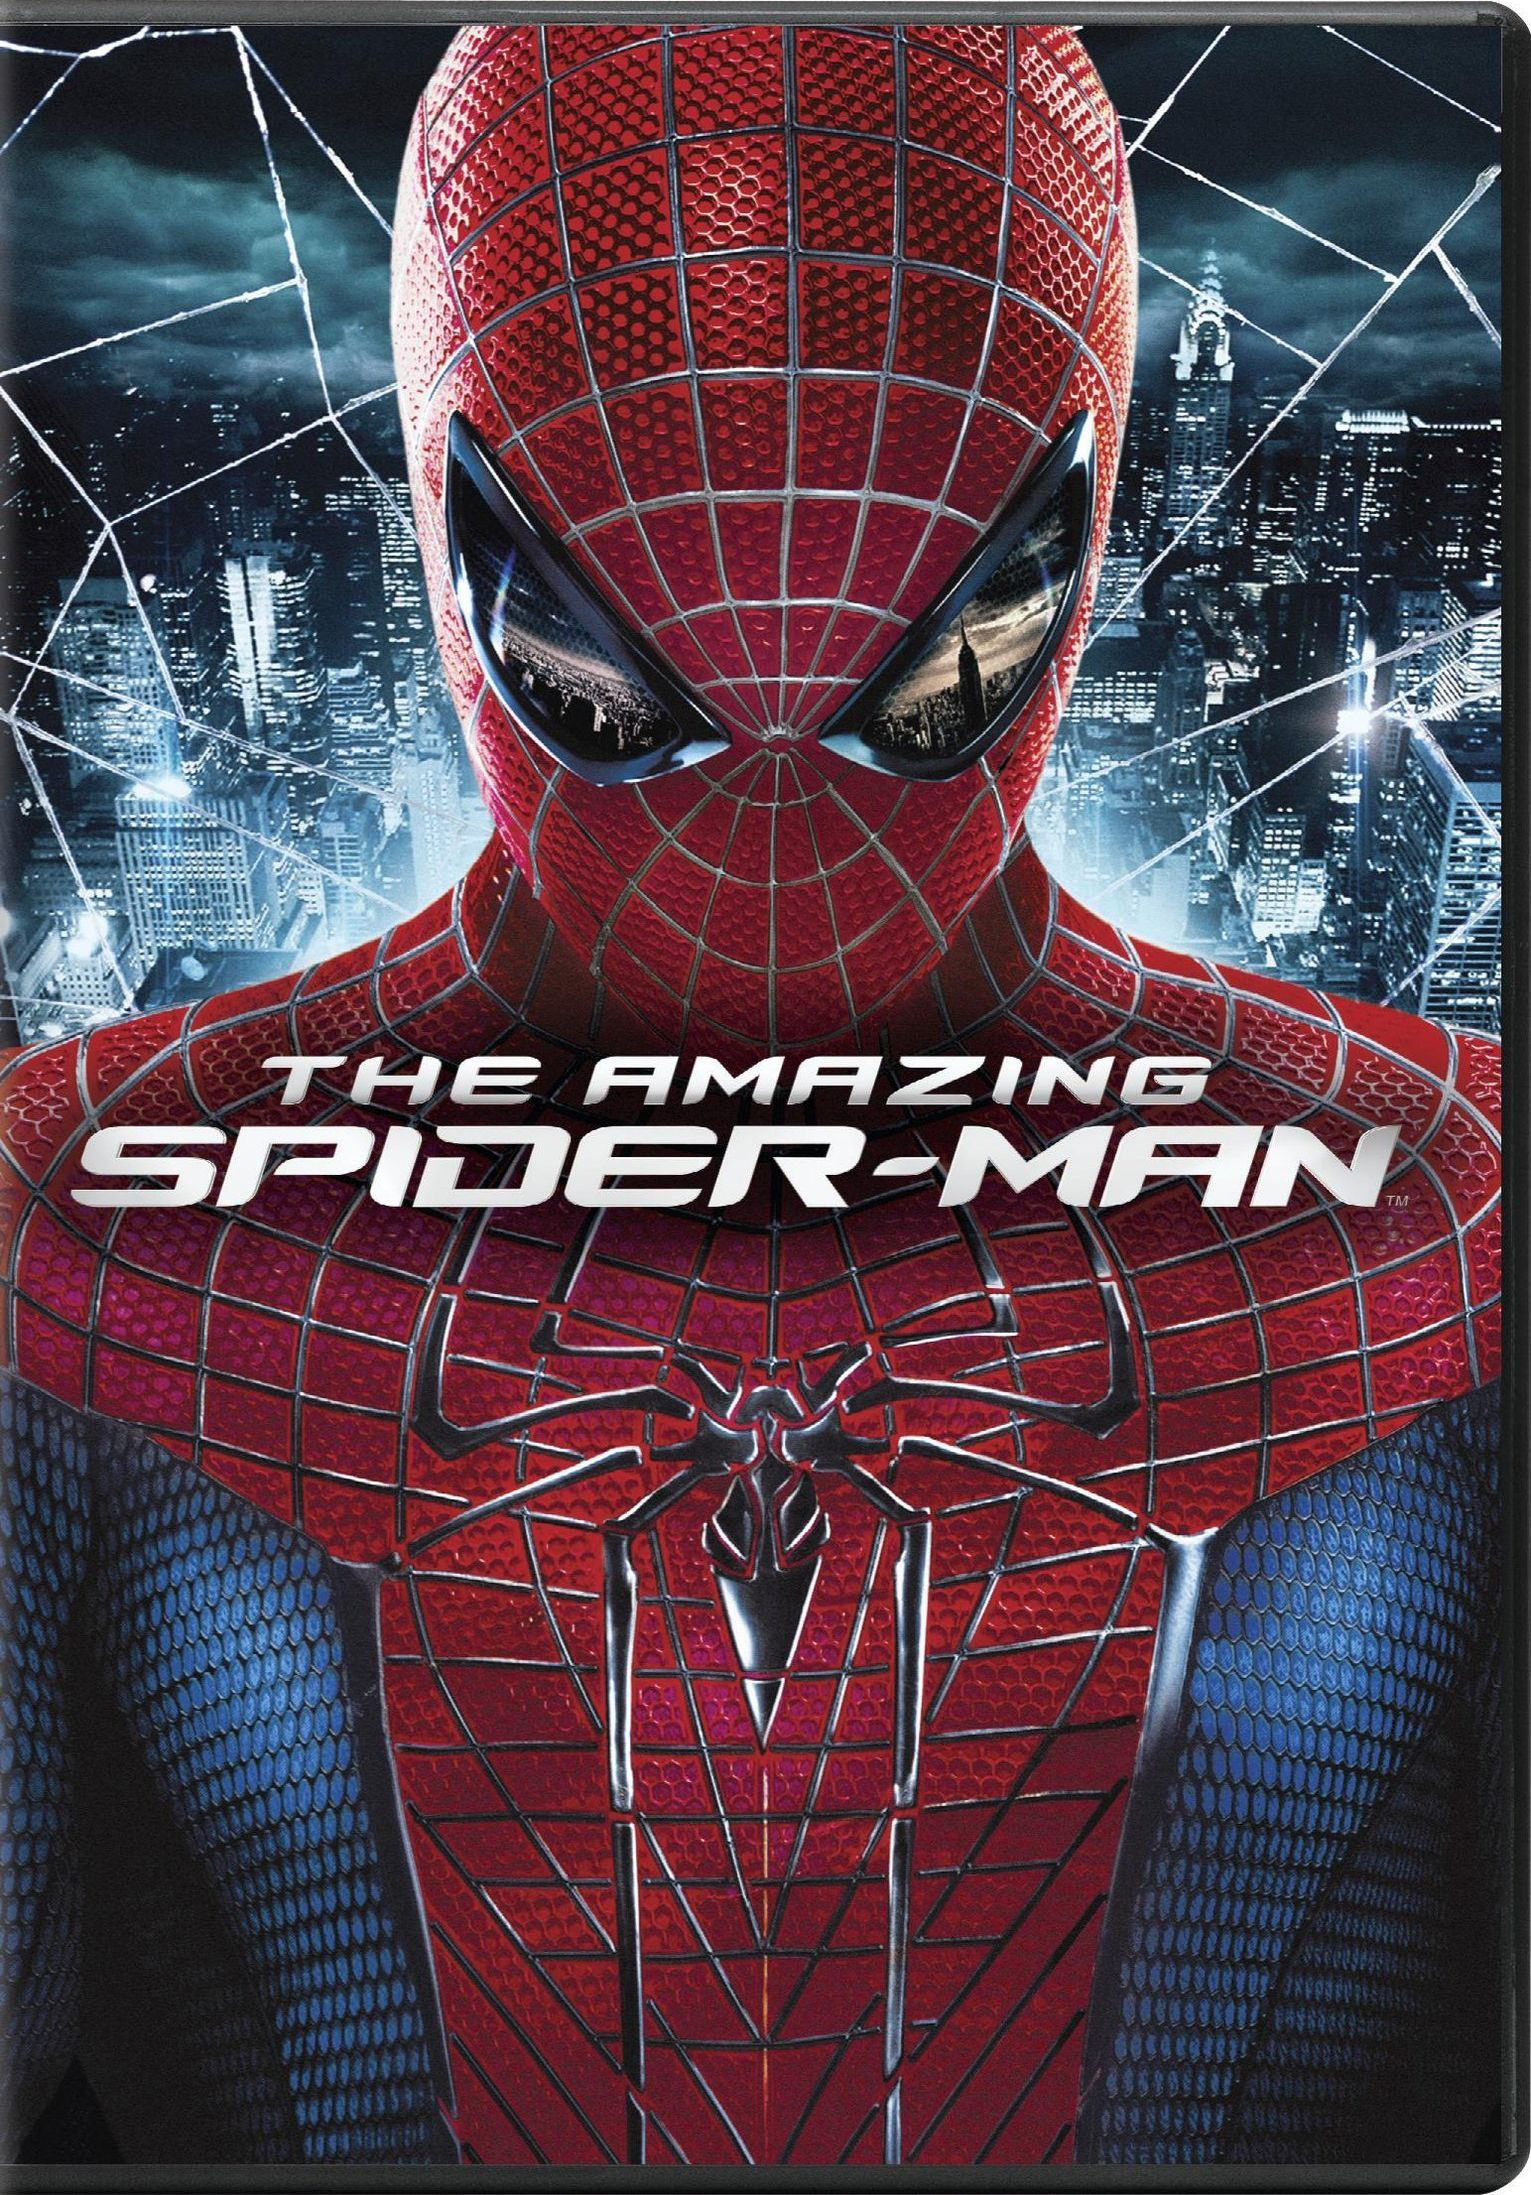 The Amazing Spiderman Dvd Release Date November 9, 2012